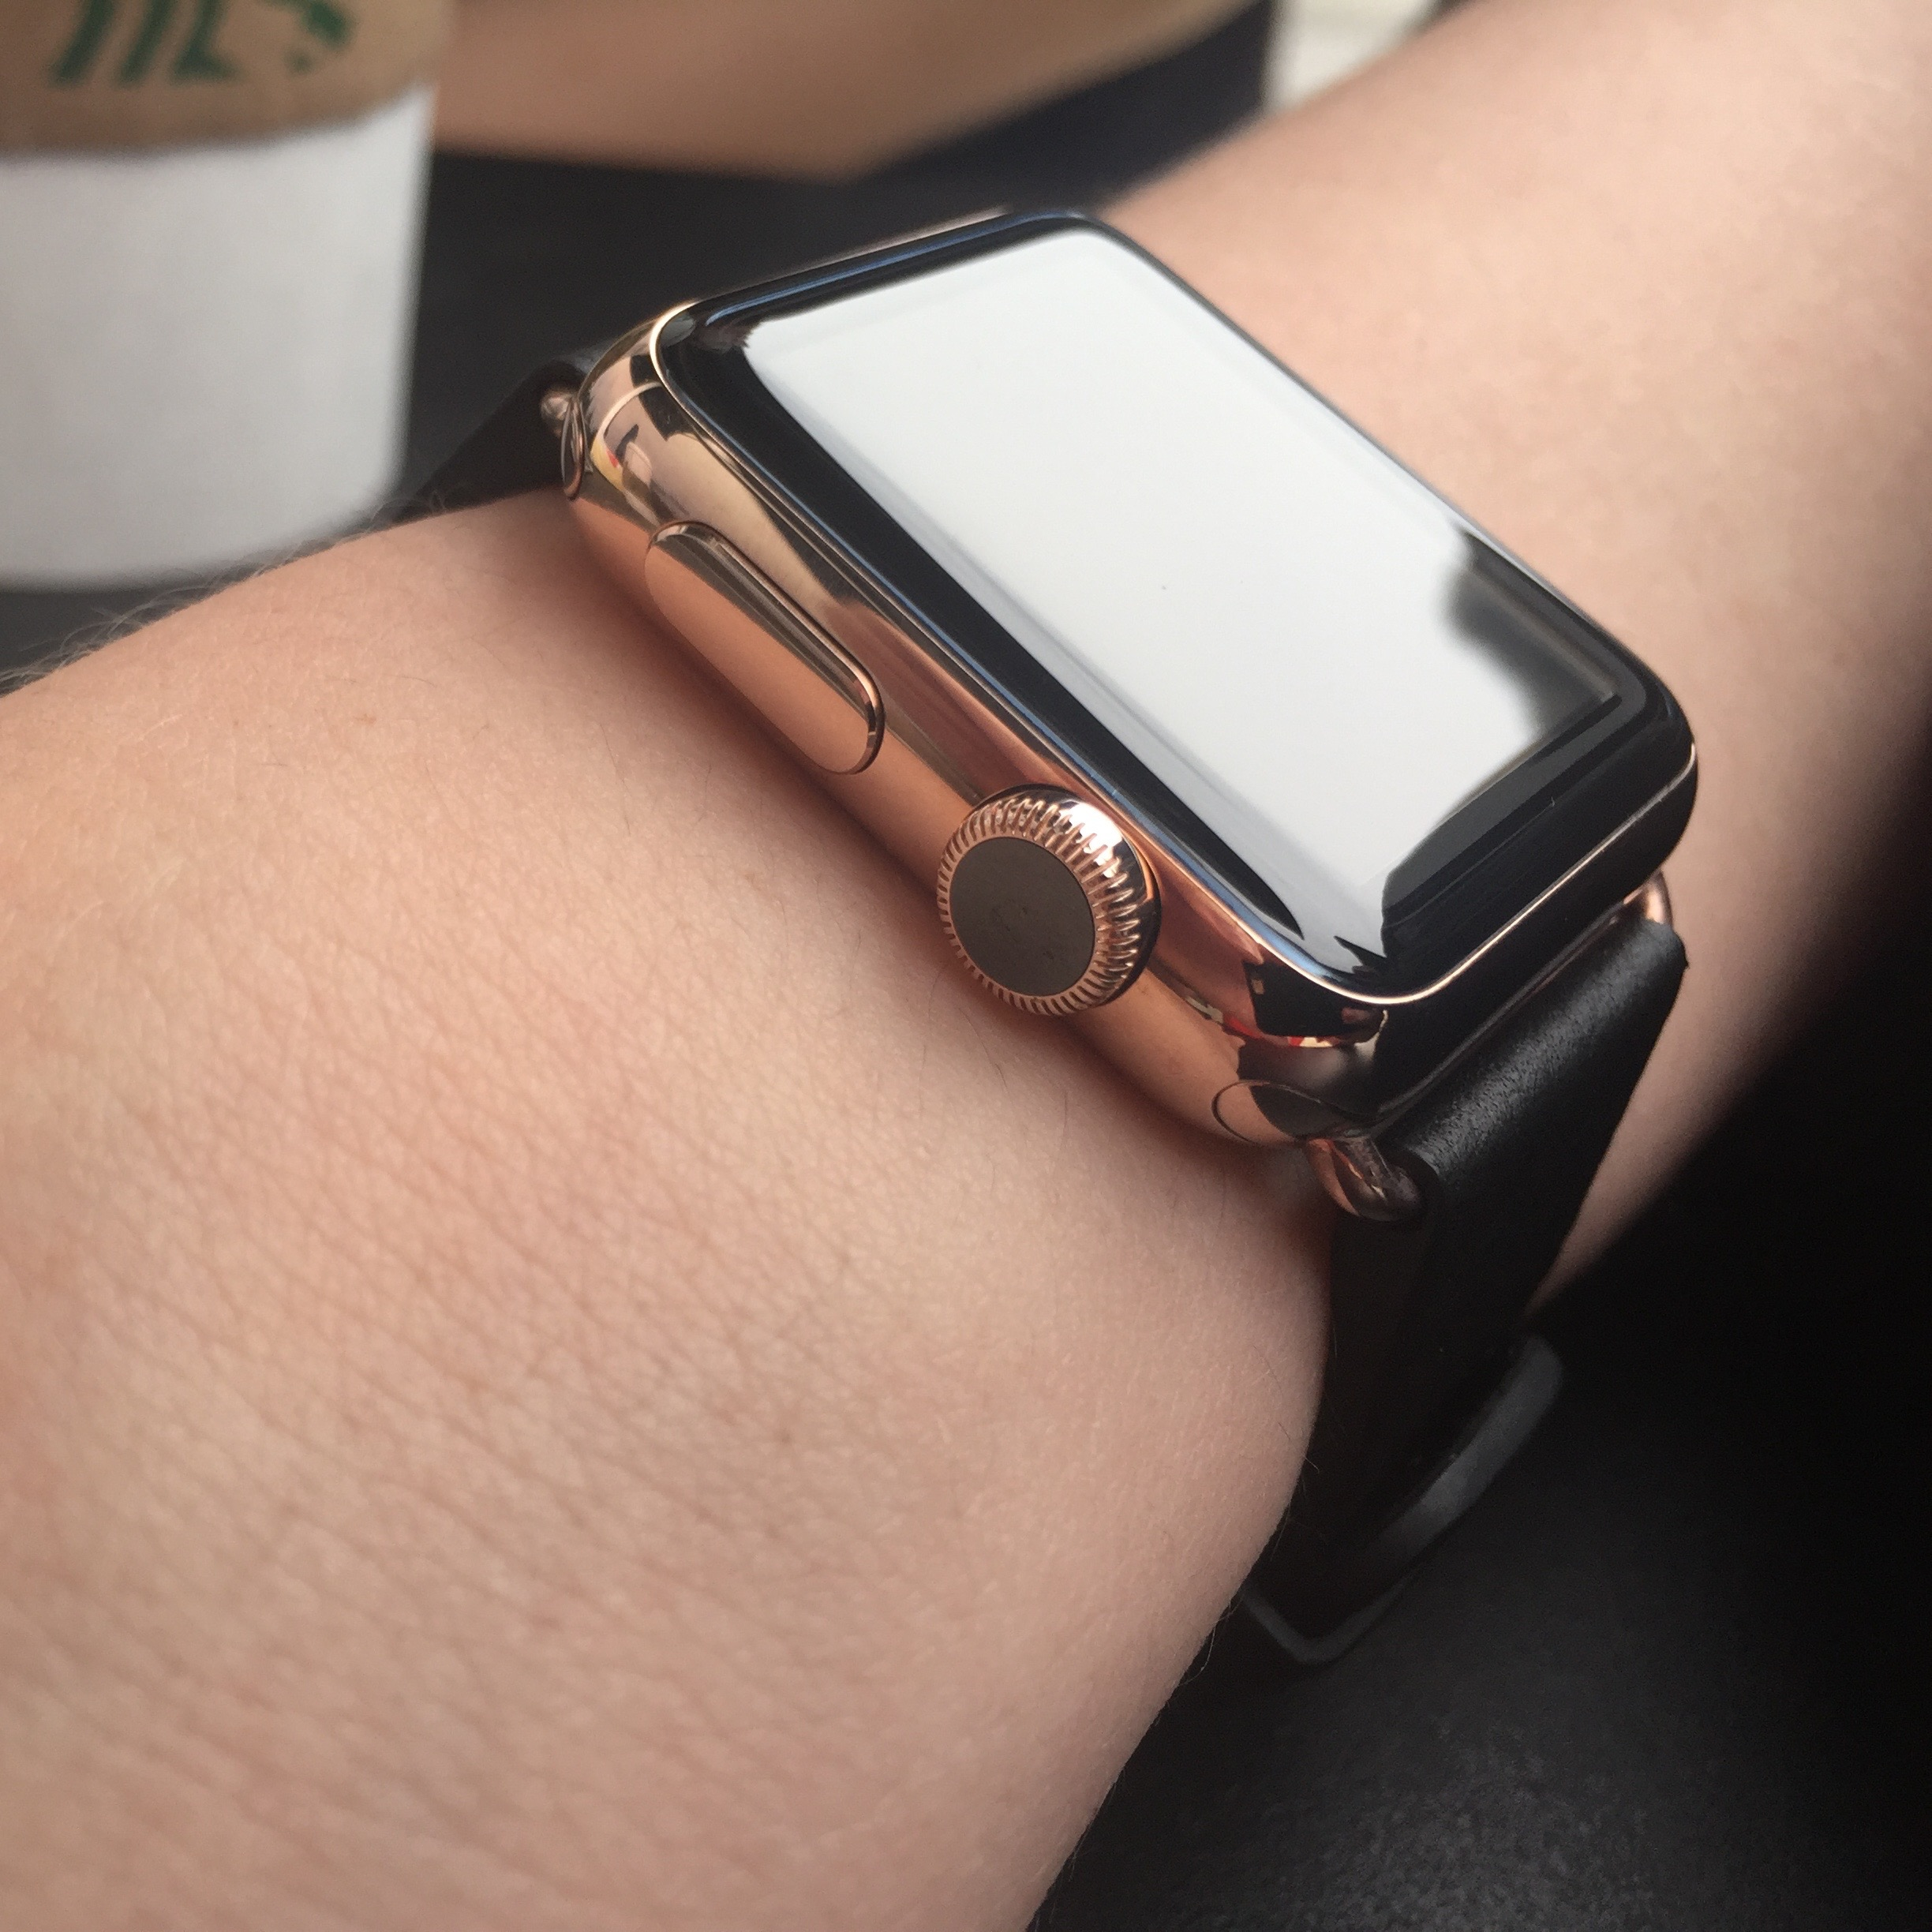 Hands On Watchplate S Rose Gold Treatment Transforms Steel Apple Watch Classic Buckle Sport Band Gallery 9to5mac